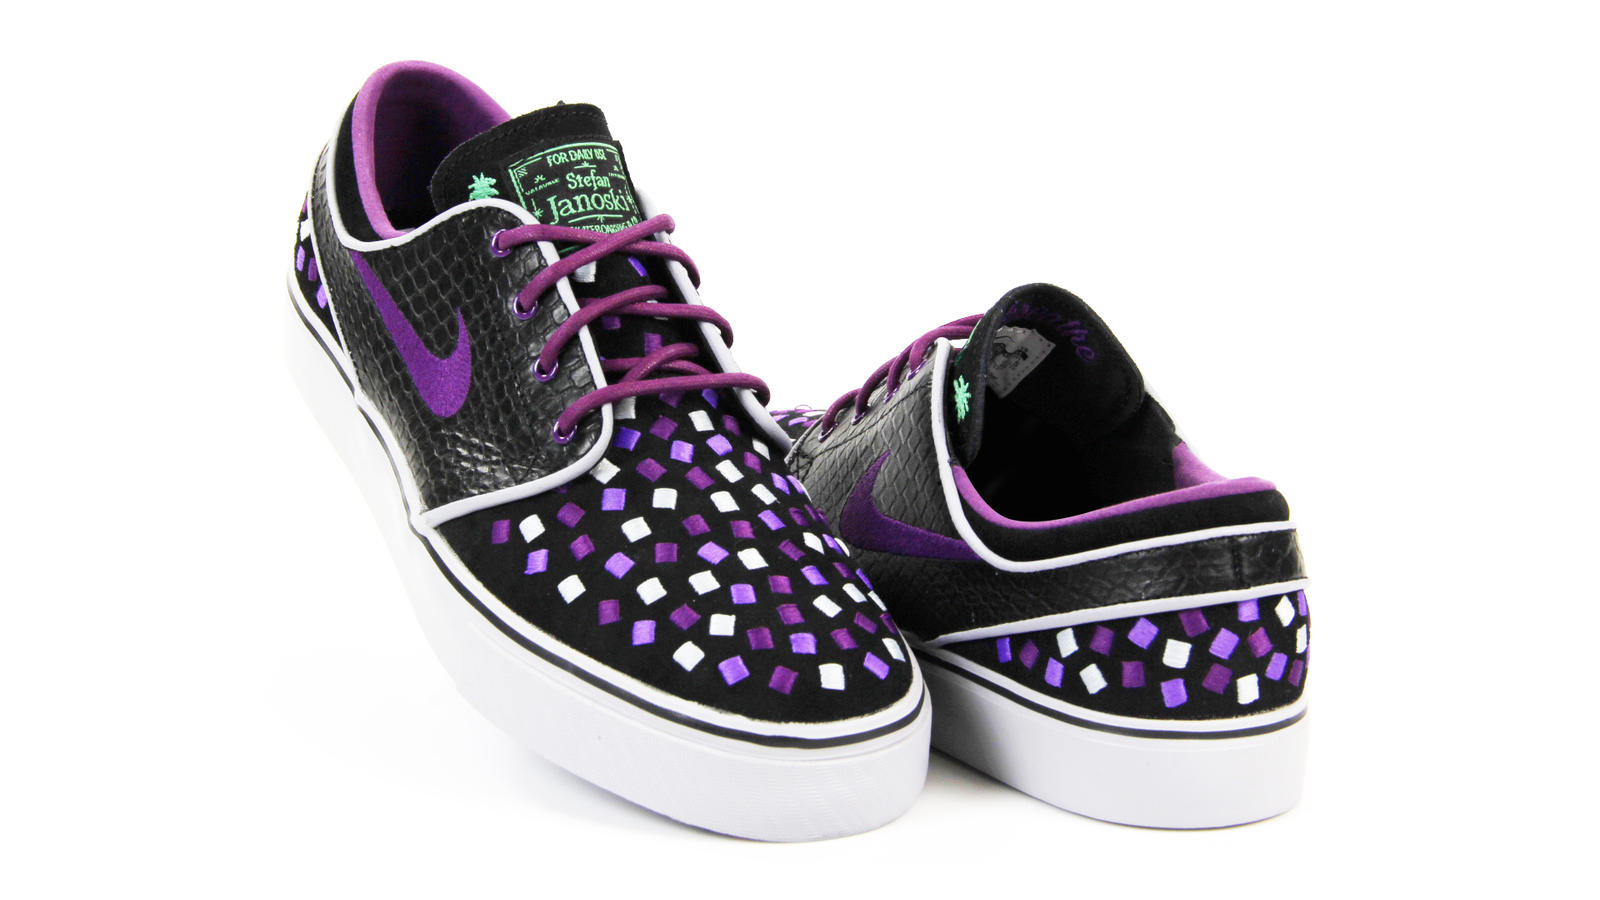 Ross Hathaway, 2013 Nike Air Zoom Janoski: Snakeskin print on right medial quarter, purple cupsole stitch on left shoe, embroidered squares on left medial quarter